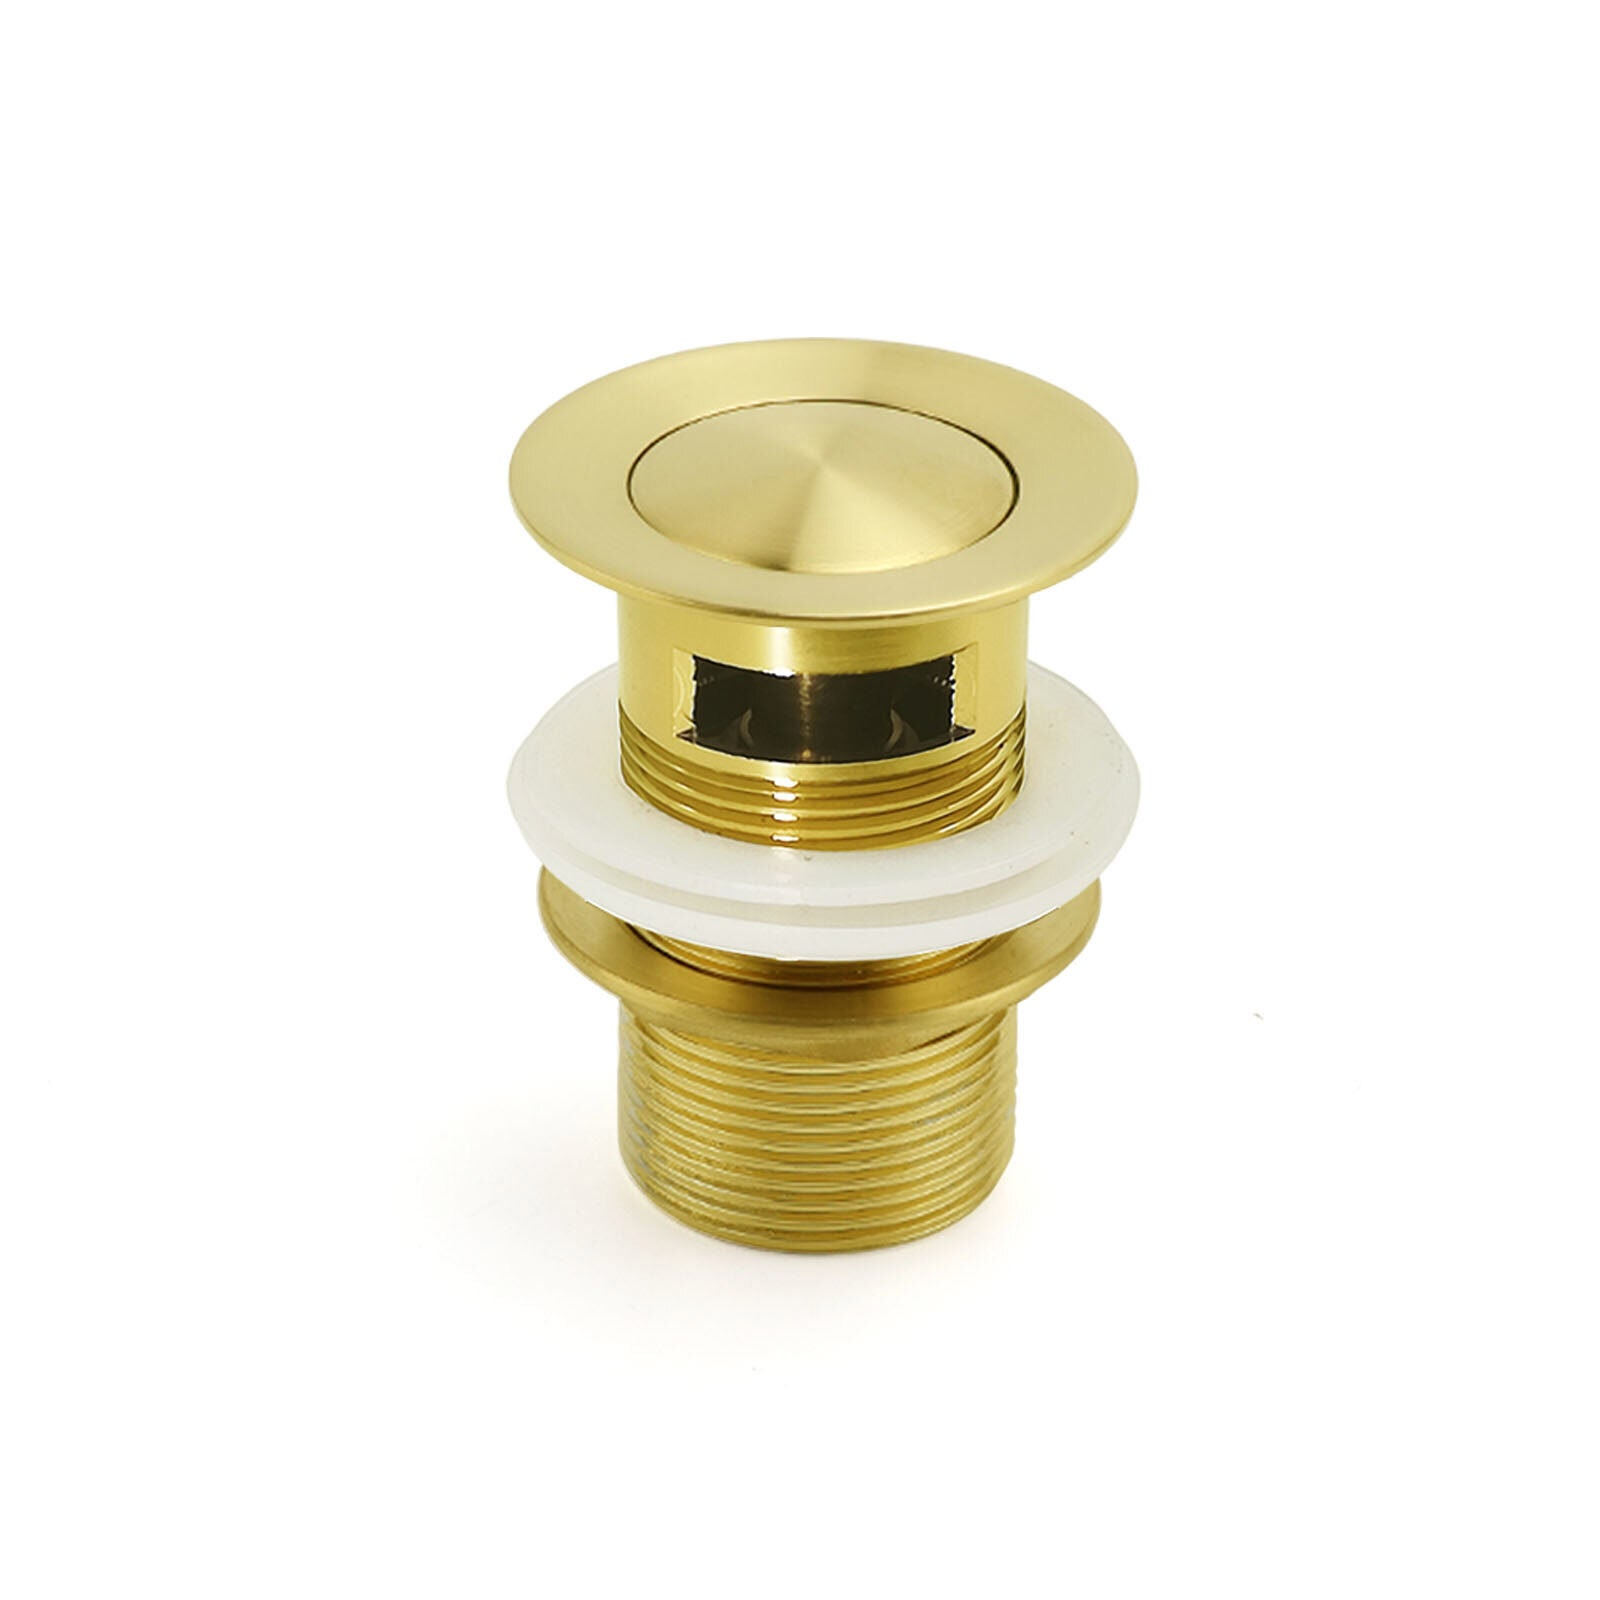 Brushed Gold 32mm Pop Up Push Waste Plug With Overflow Basin Sink Drain Outlet